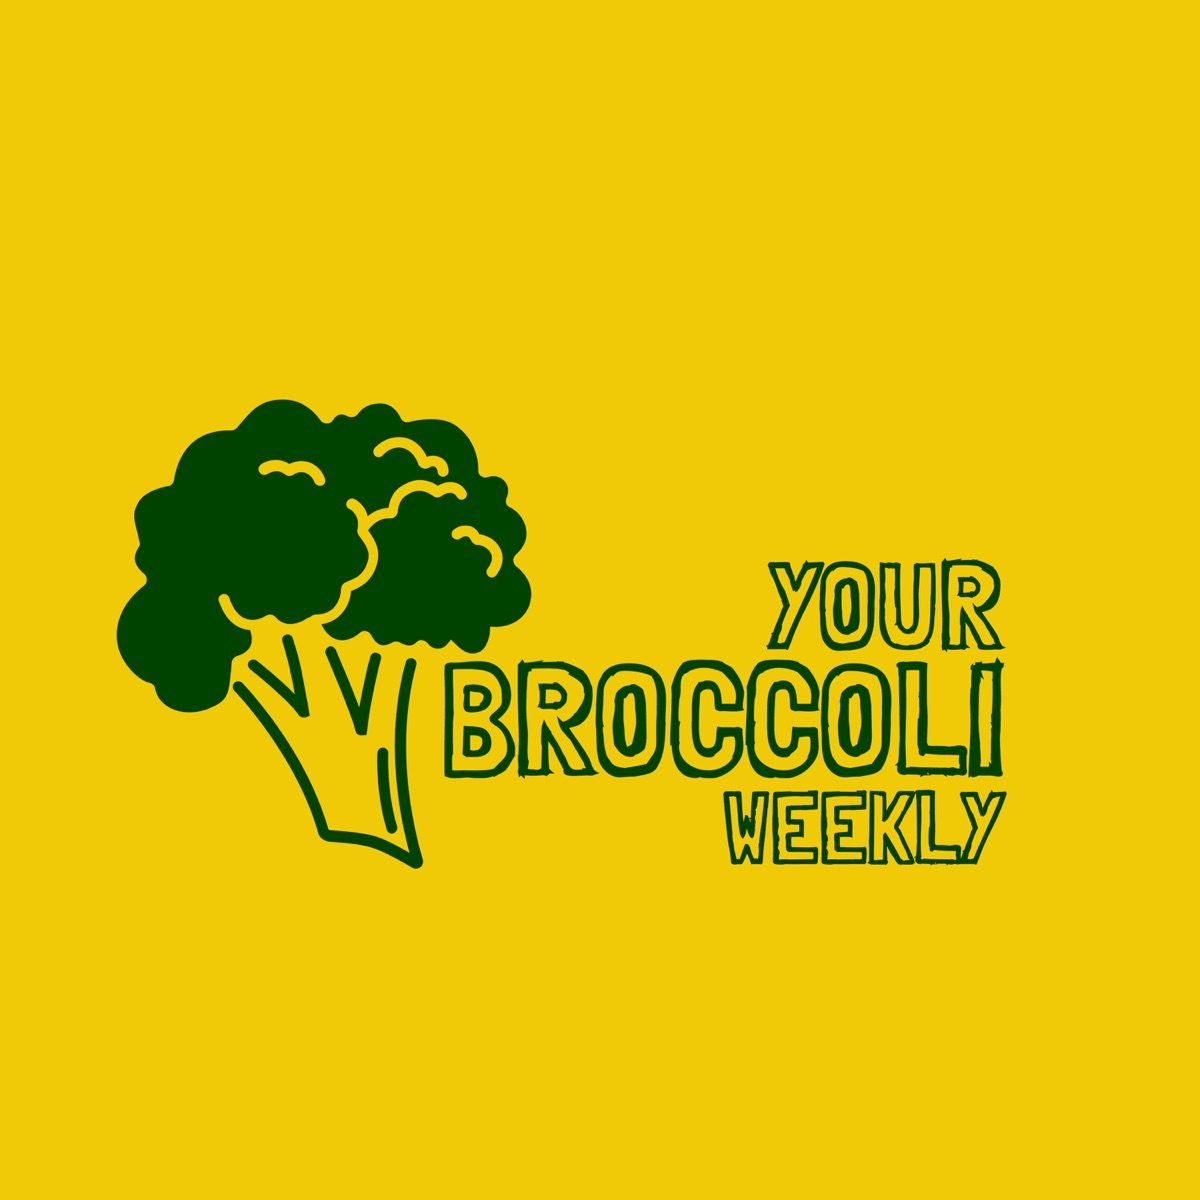 Your Broccoli Weekly - How COVID19 has impacted the UK education system